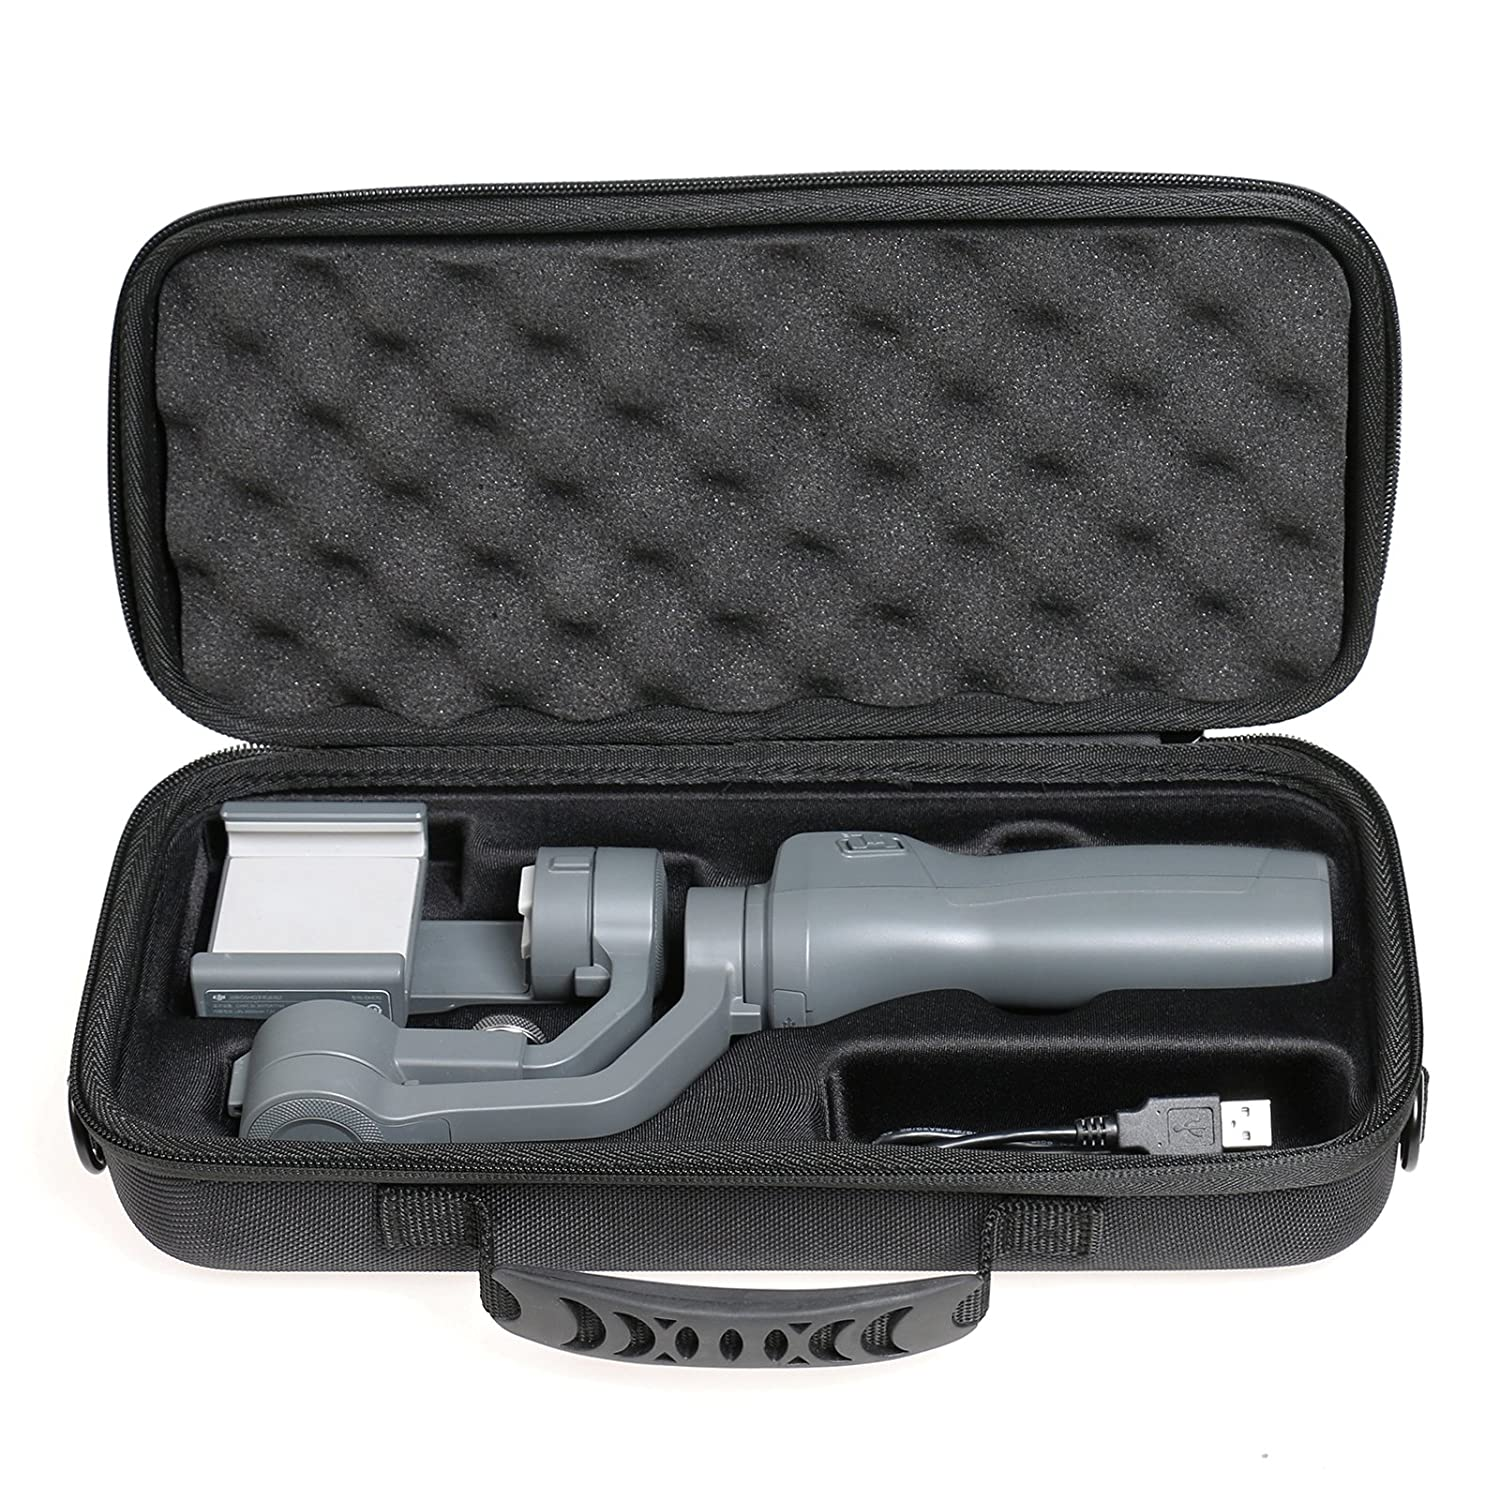 XBERSTAR Handhold Gimbal Hard EVA Case Portable Travel on The Go Carrying Bag Storage Protector Cover for DJI OSMO Mobile 2